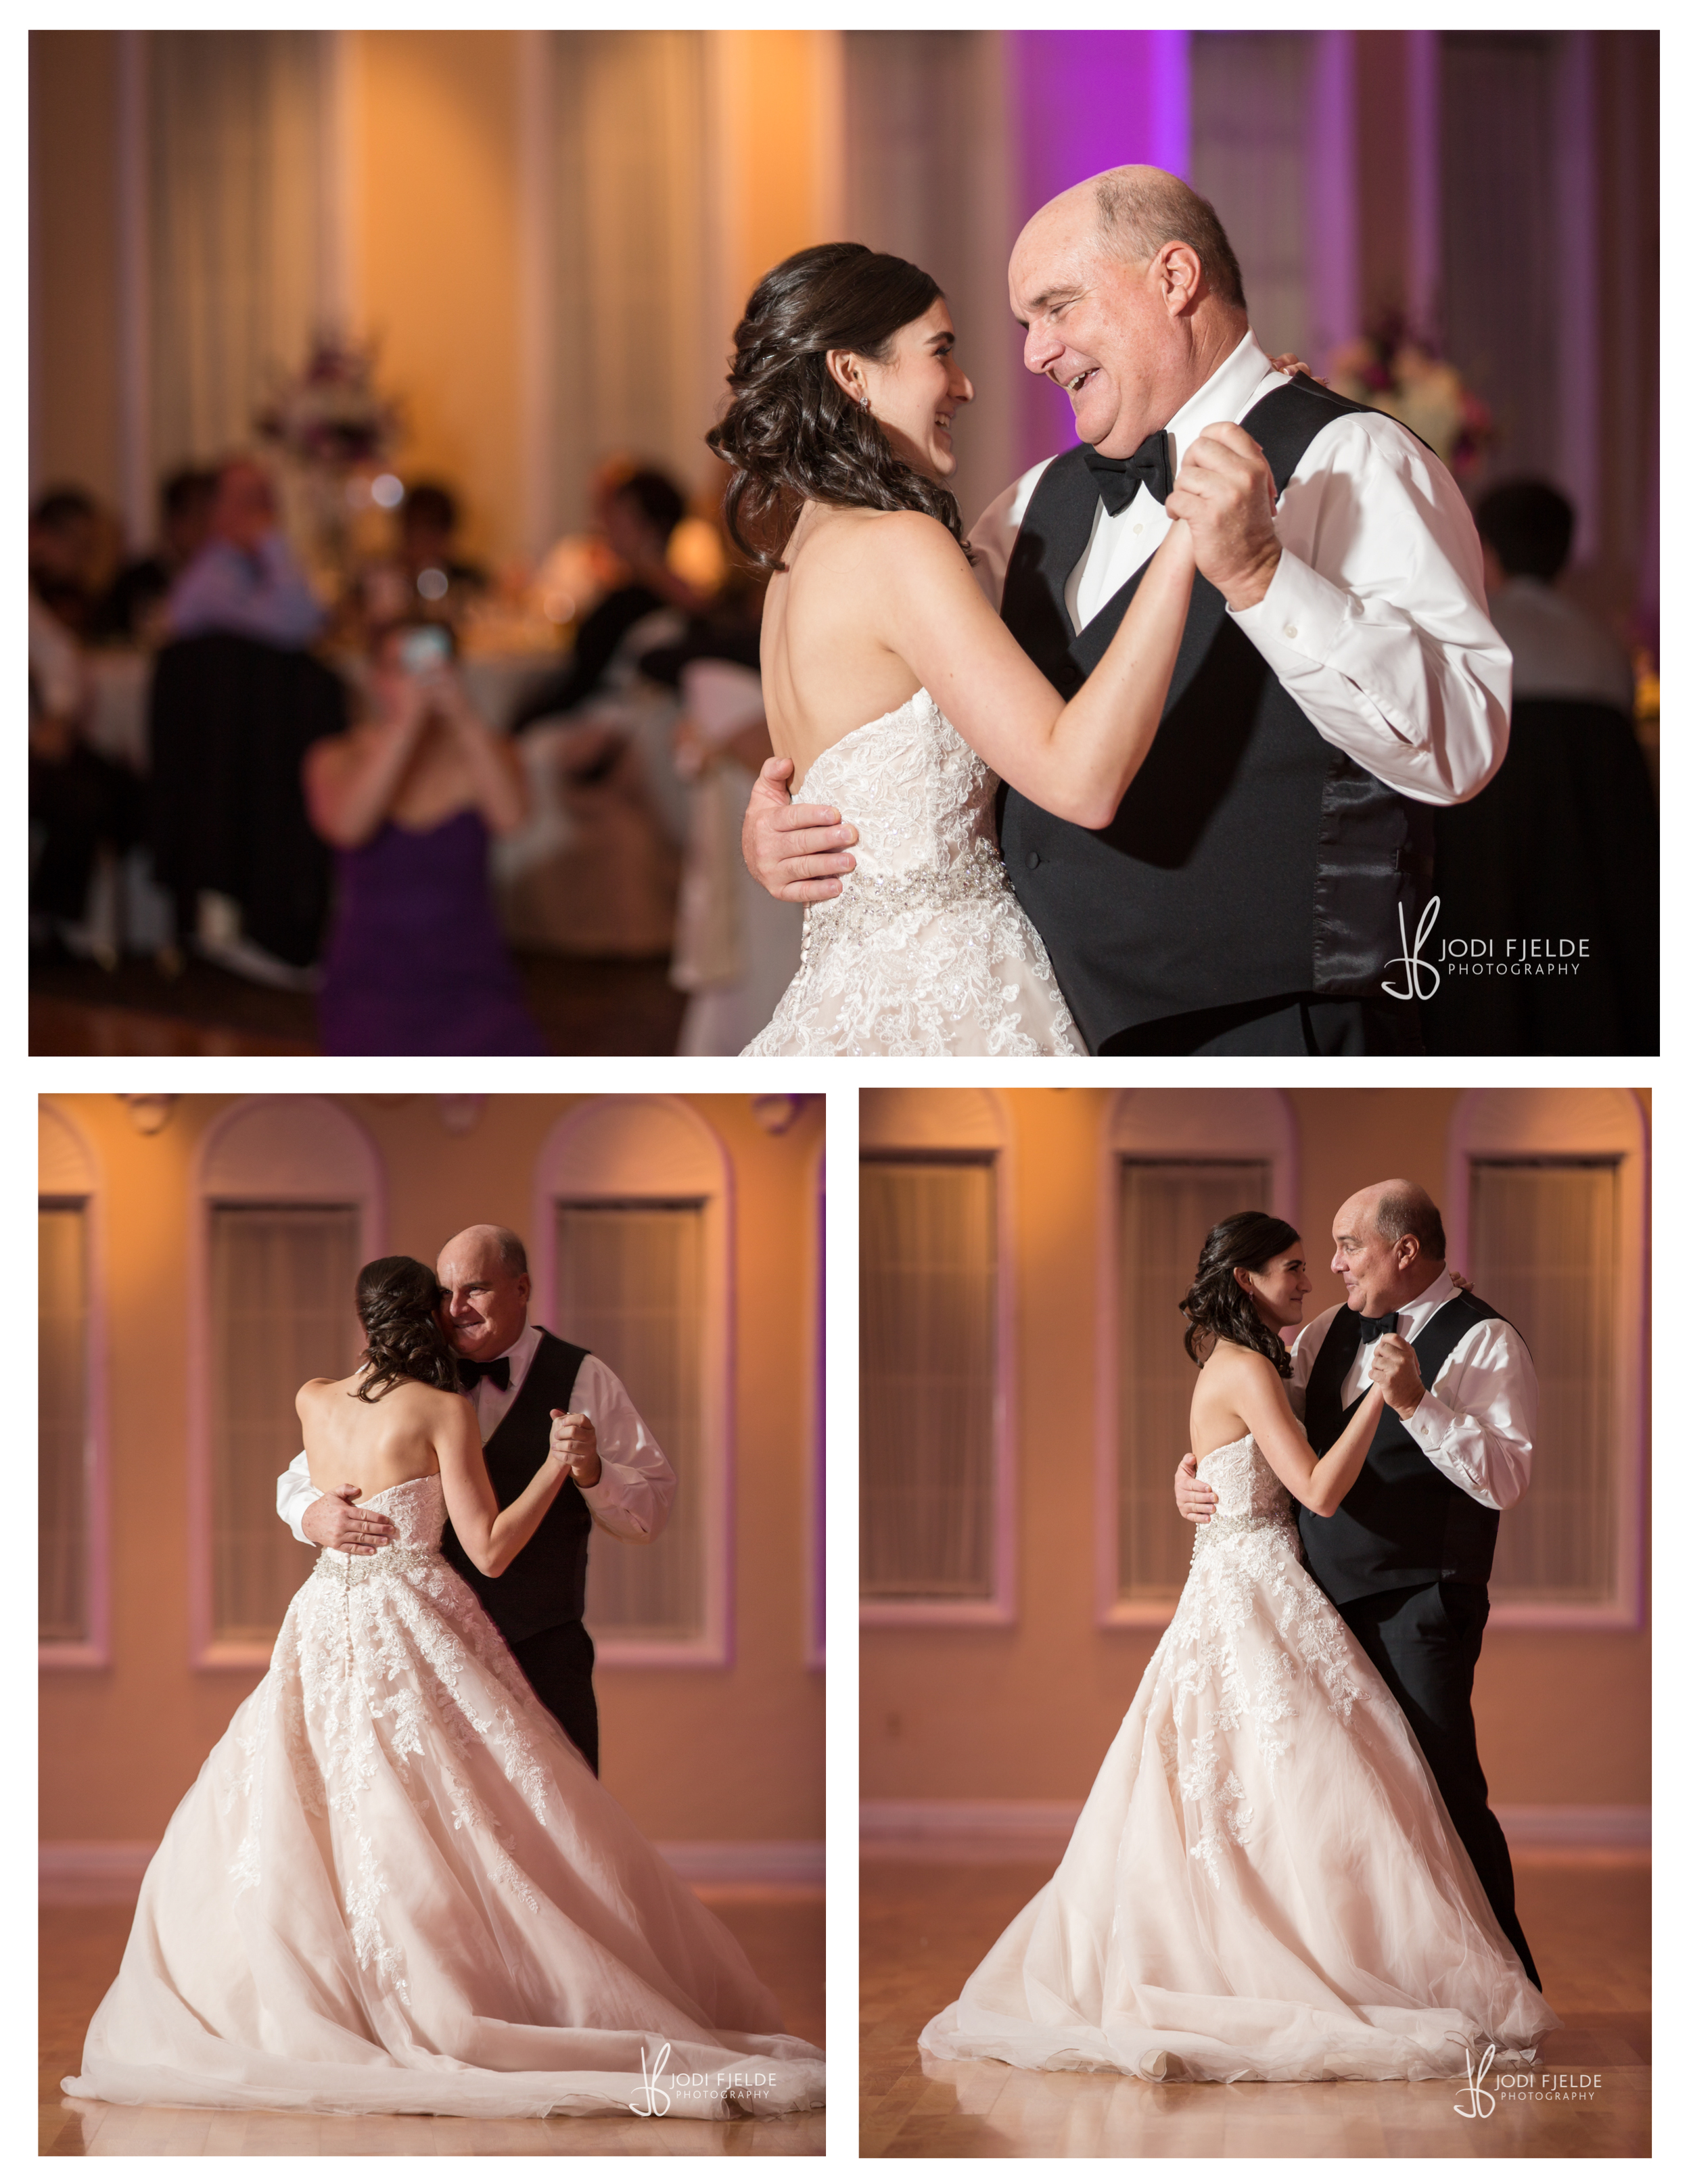 Benvenuto_Palm_Beach_Wedding_Jewish_Michelle & Jason_Jodi_Fjedle_Photography 61.jpg